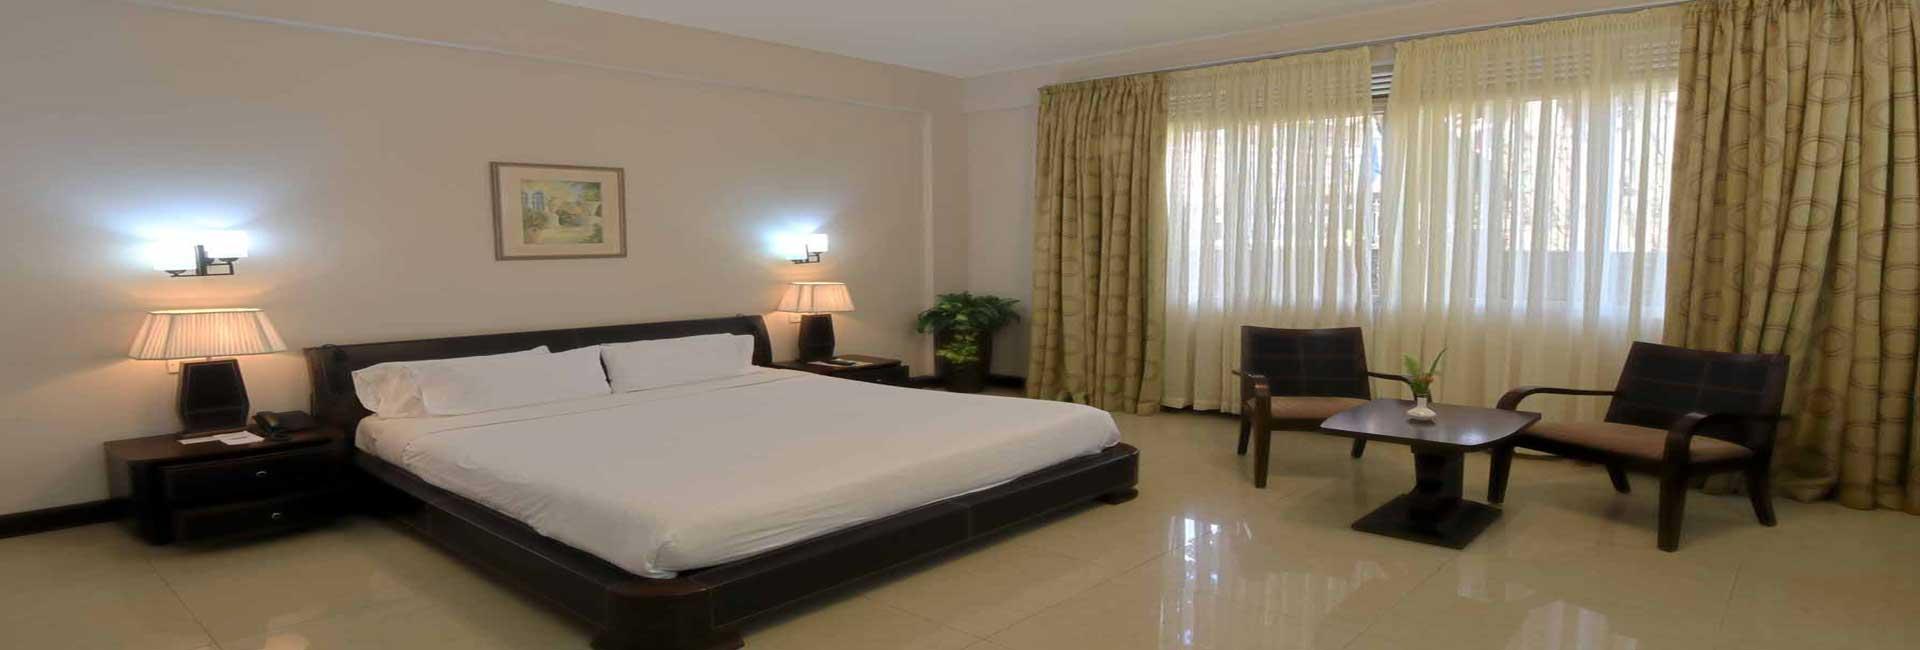 Imperial group of hotels kampala uganda 2 dailygadgetfo Gallery